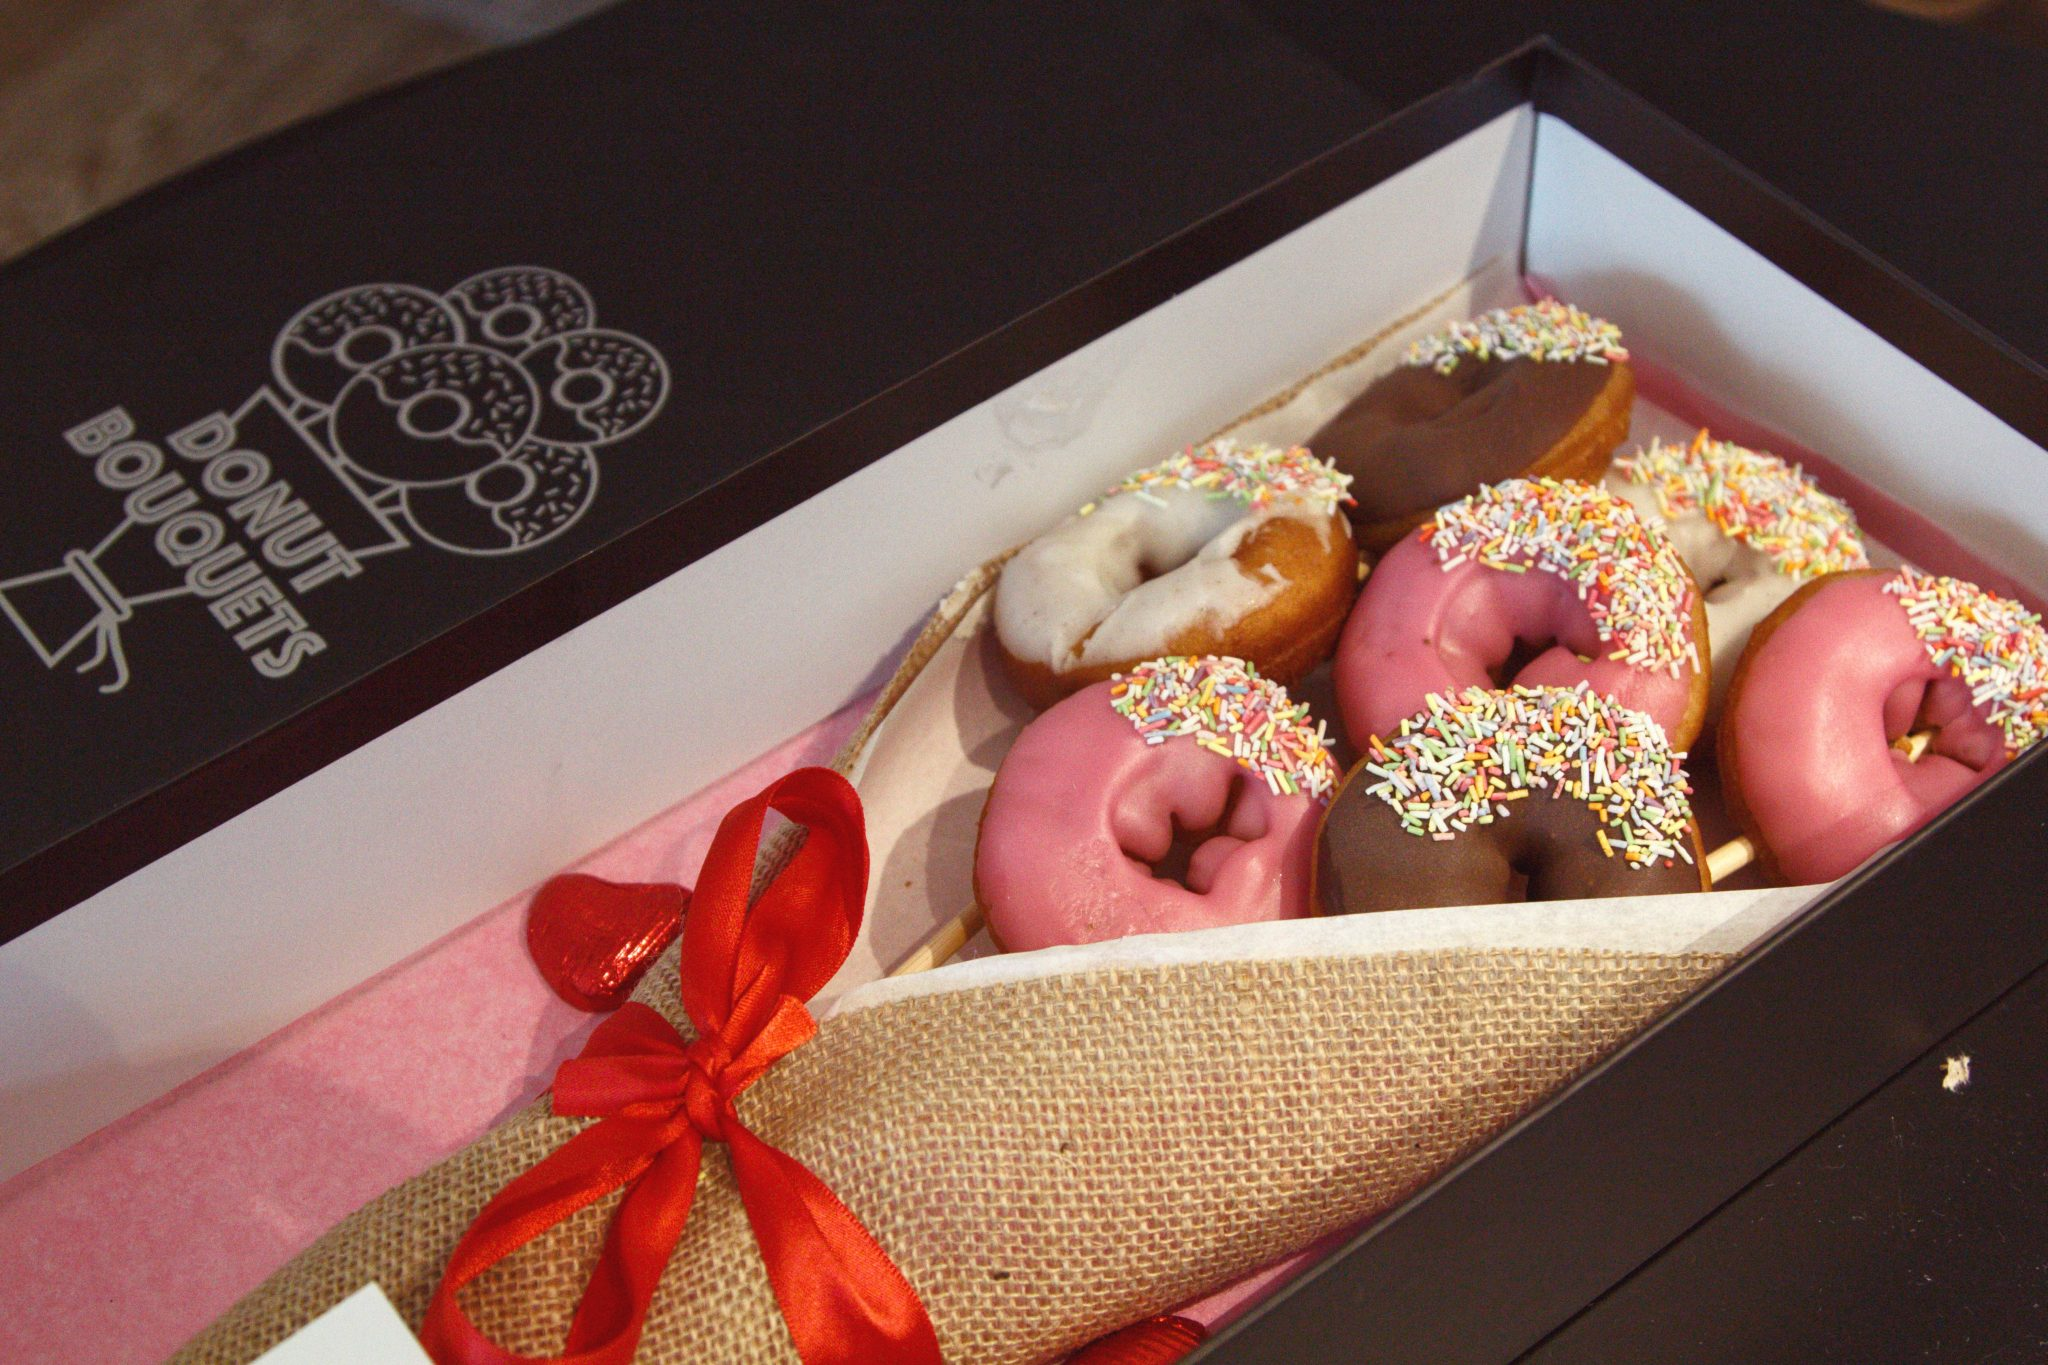 Donut delivery london unique gifts flower alternatives last minute